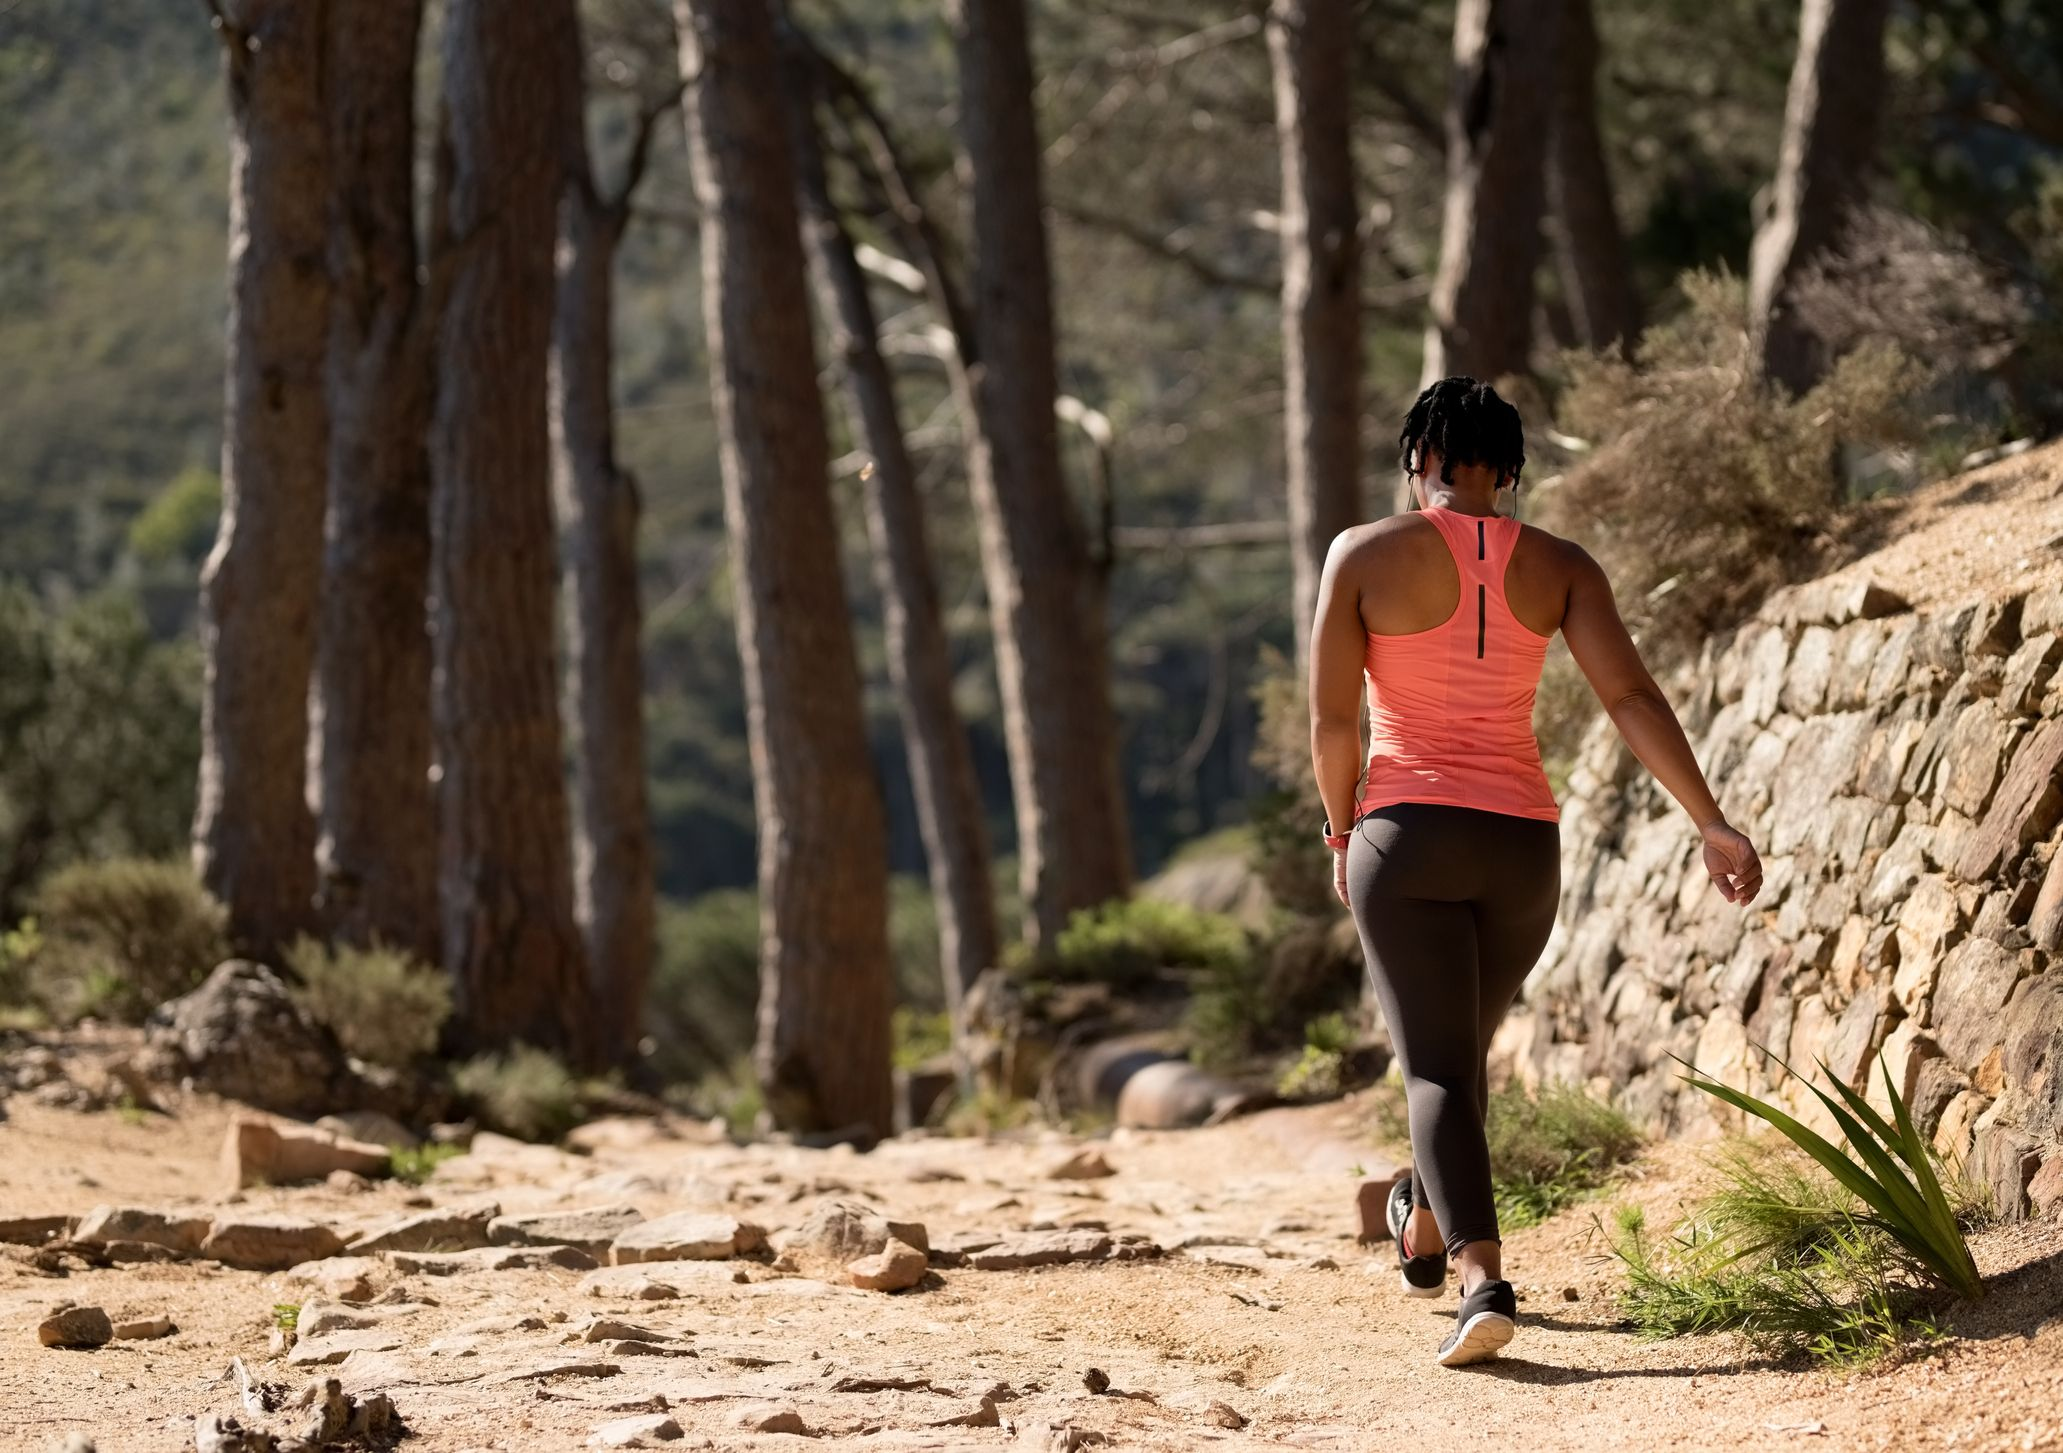 10 Benefits Of Walking That Can Improve Your Health In Major Ways